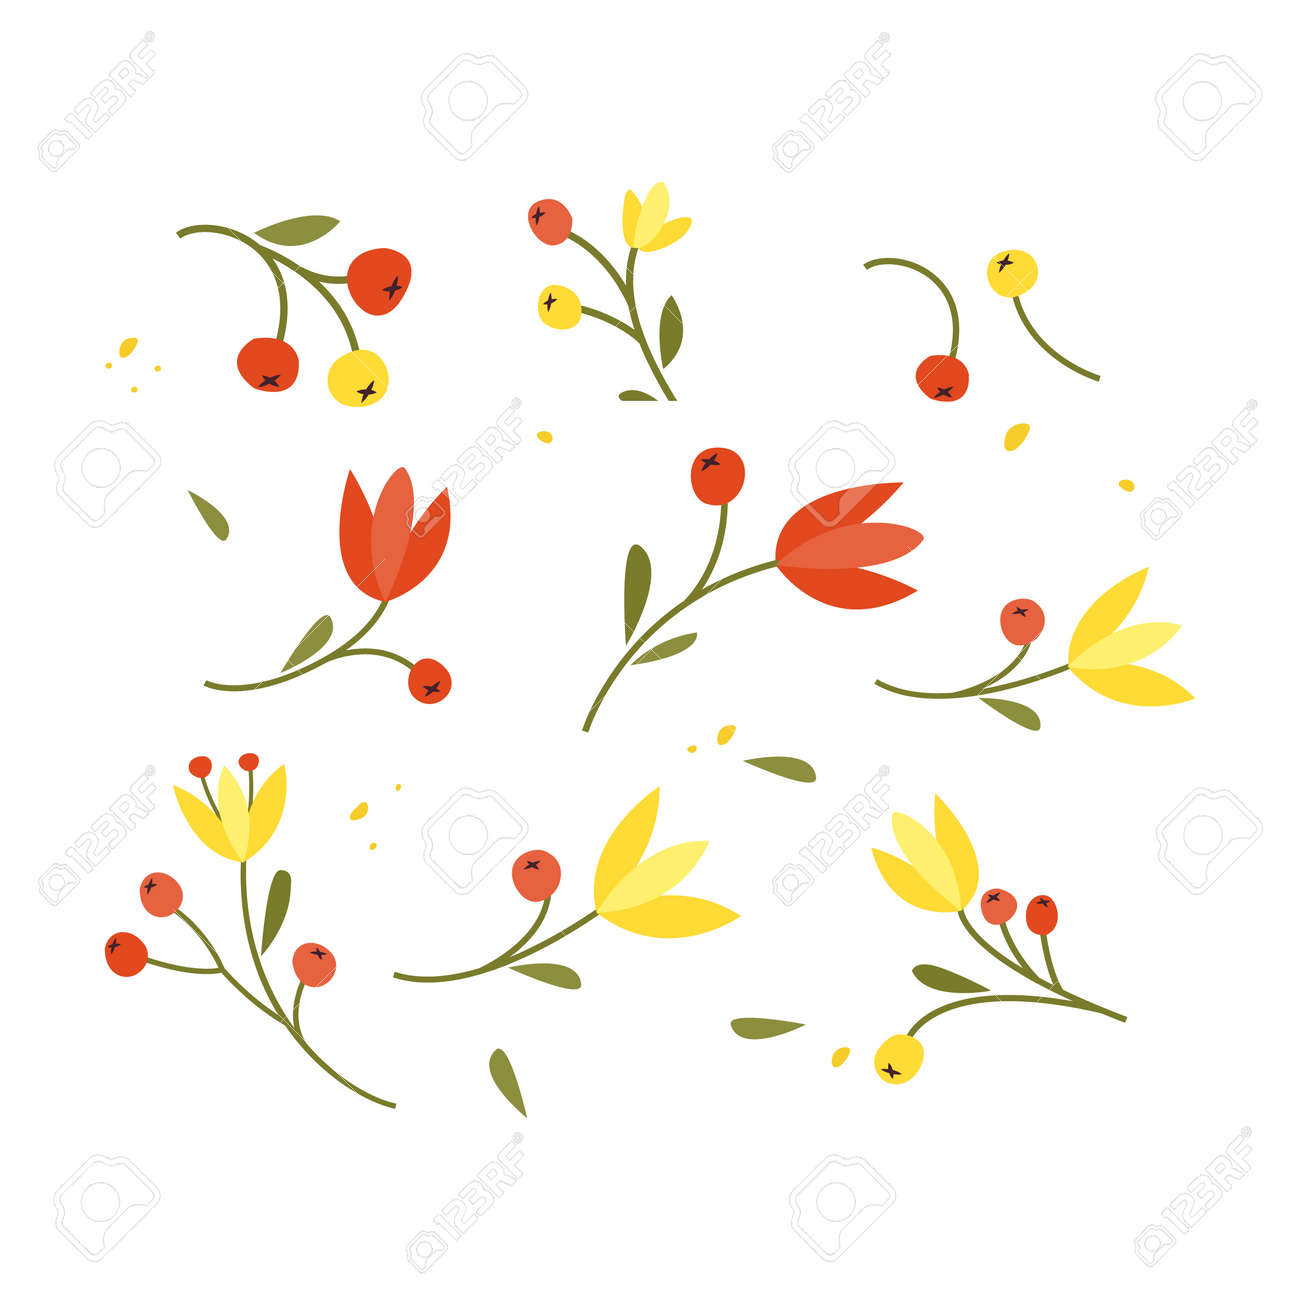 Collection of hand drawn plants. Botanical set of sketch flowers and branches, vector illustrations - 171530268